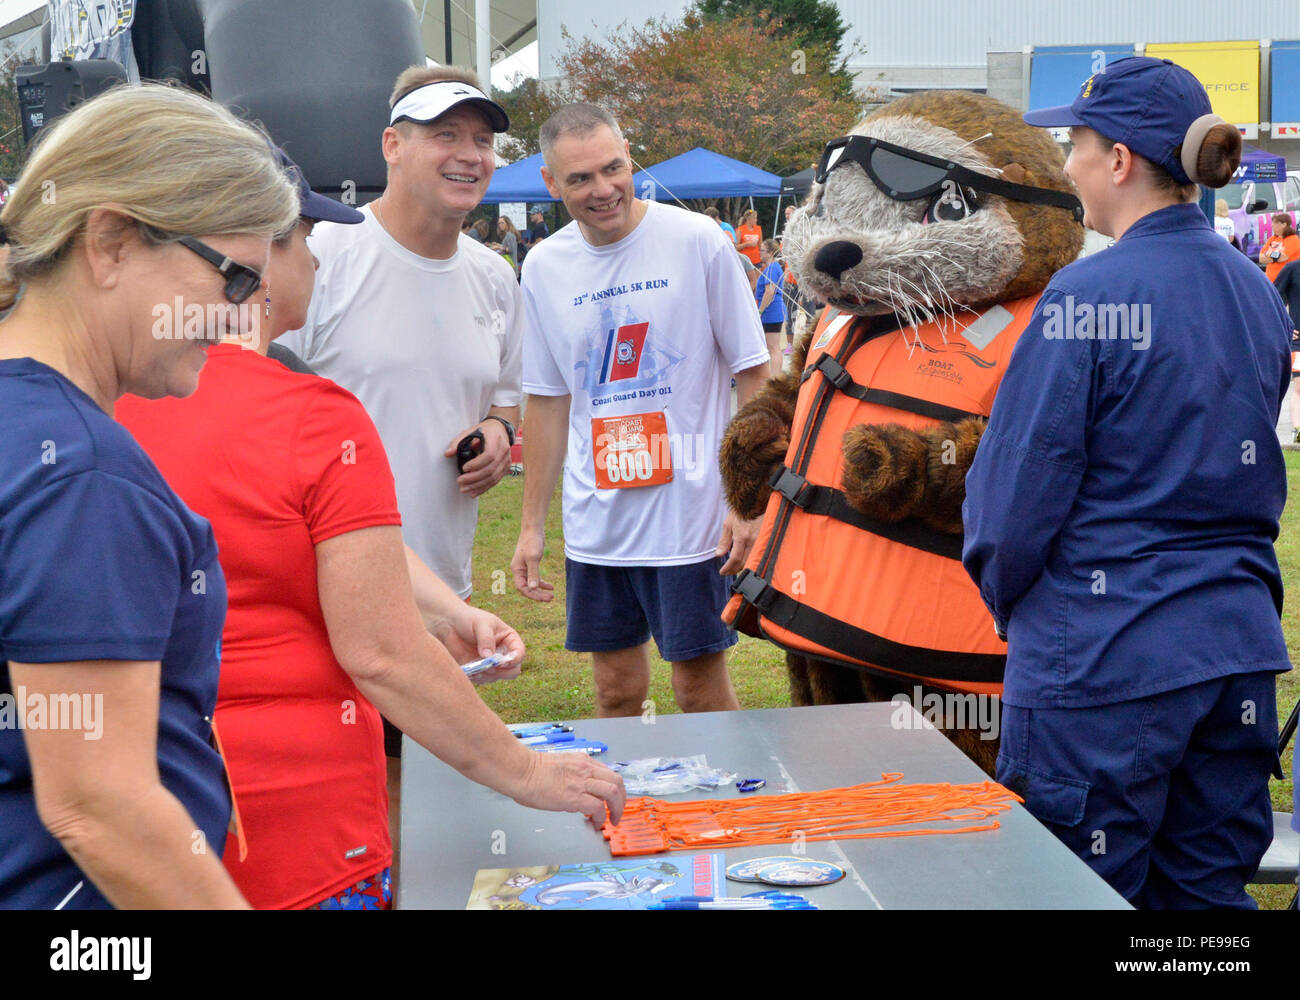 Rear Adm. Steven P. Metruck (left) and Master Chief Petty Officer Mark Pearson (right) talk with shipmates and Sammy the Sea Otter, Saturday, Nov. 7, 2015, during Coast Guard Day festivities in Portsmouth, Va. The city of Portsmouth is a designated Coast Guard City and held a festival to honor the men and women of the service and their families. (Coast Guard photograph by Petty Officer 3rd Class Joshua Canup) Stock Photo